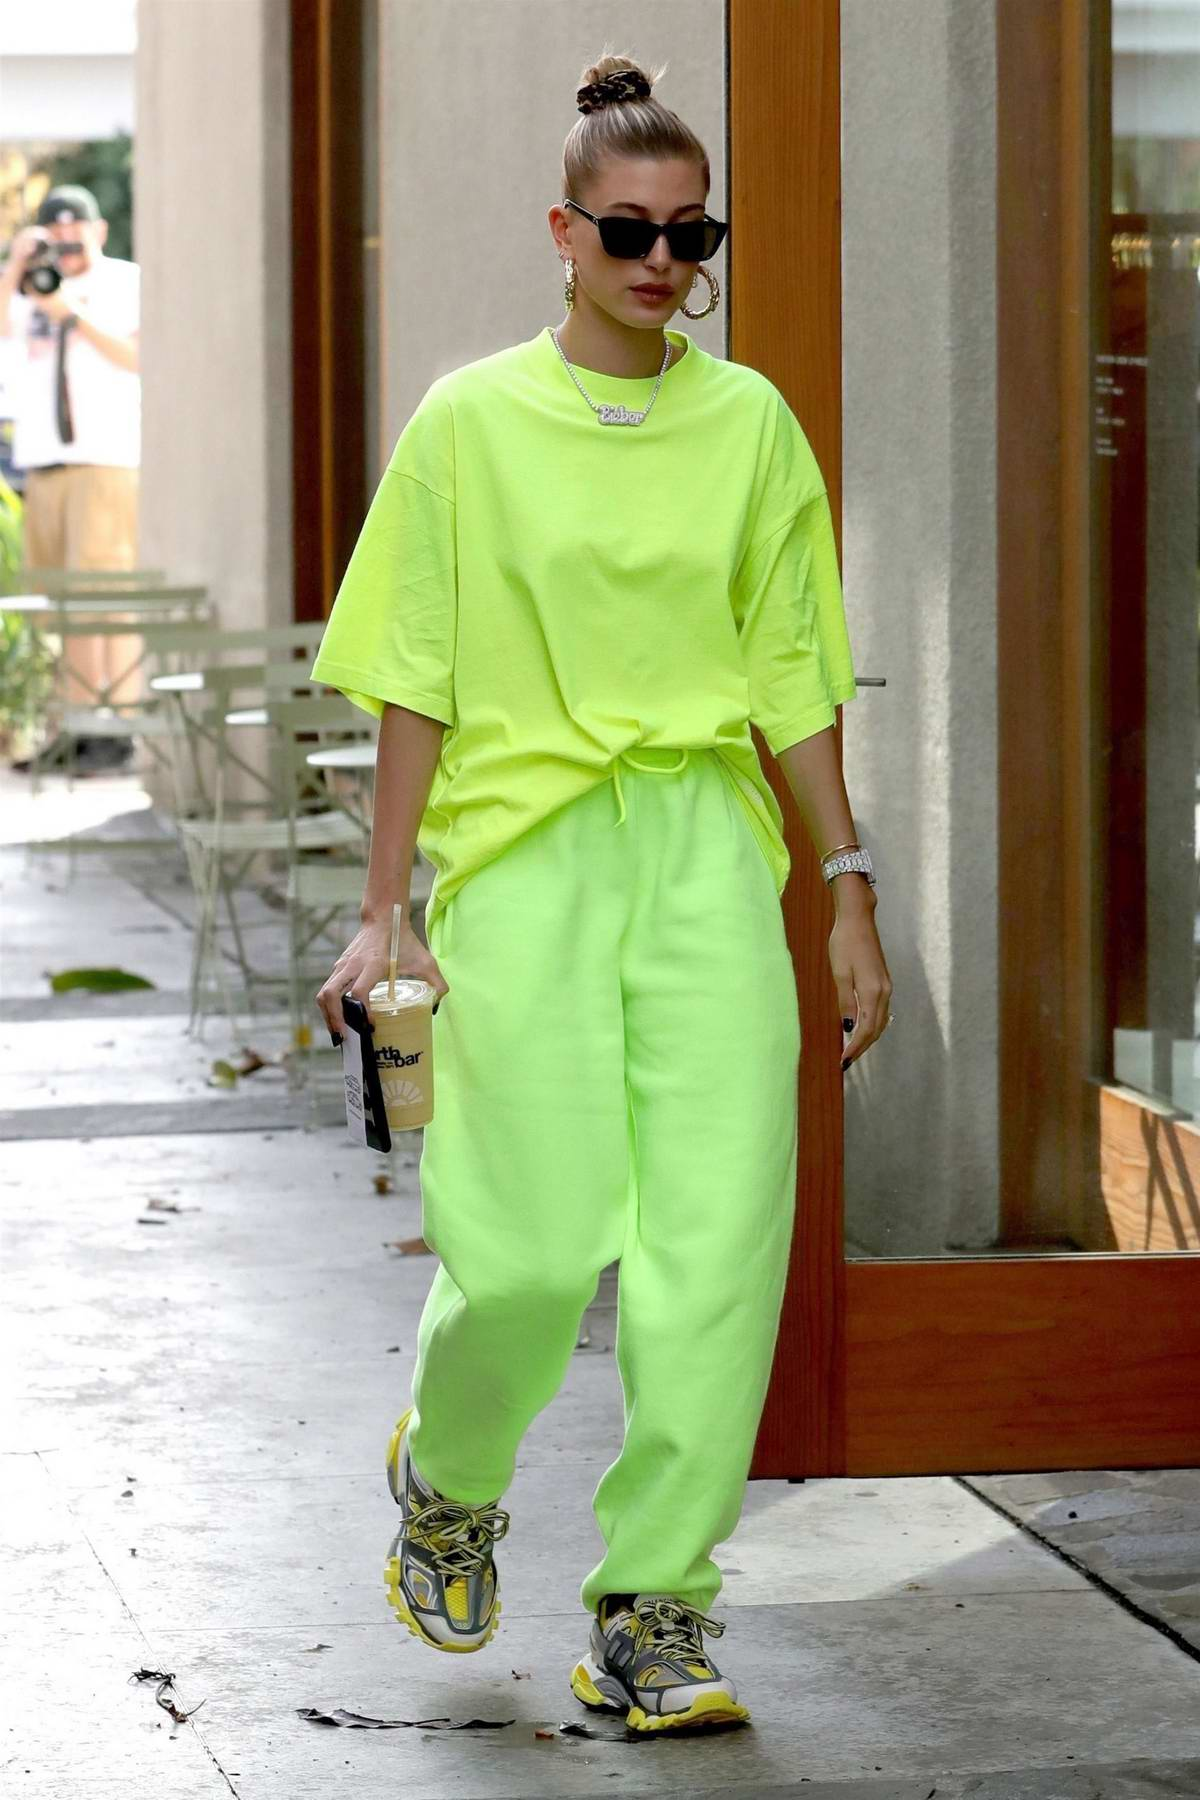 Hailey Baldwin rocks neon green outfit with a Bieber necklace as she arrives at Nine Zero One salon in West Hollywood, Los Angeles